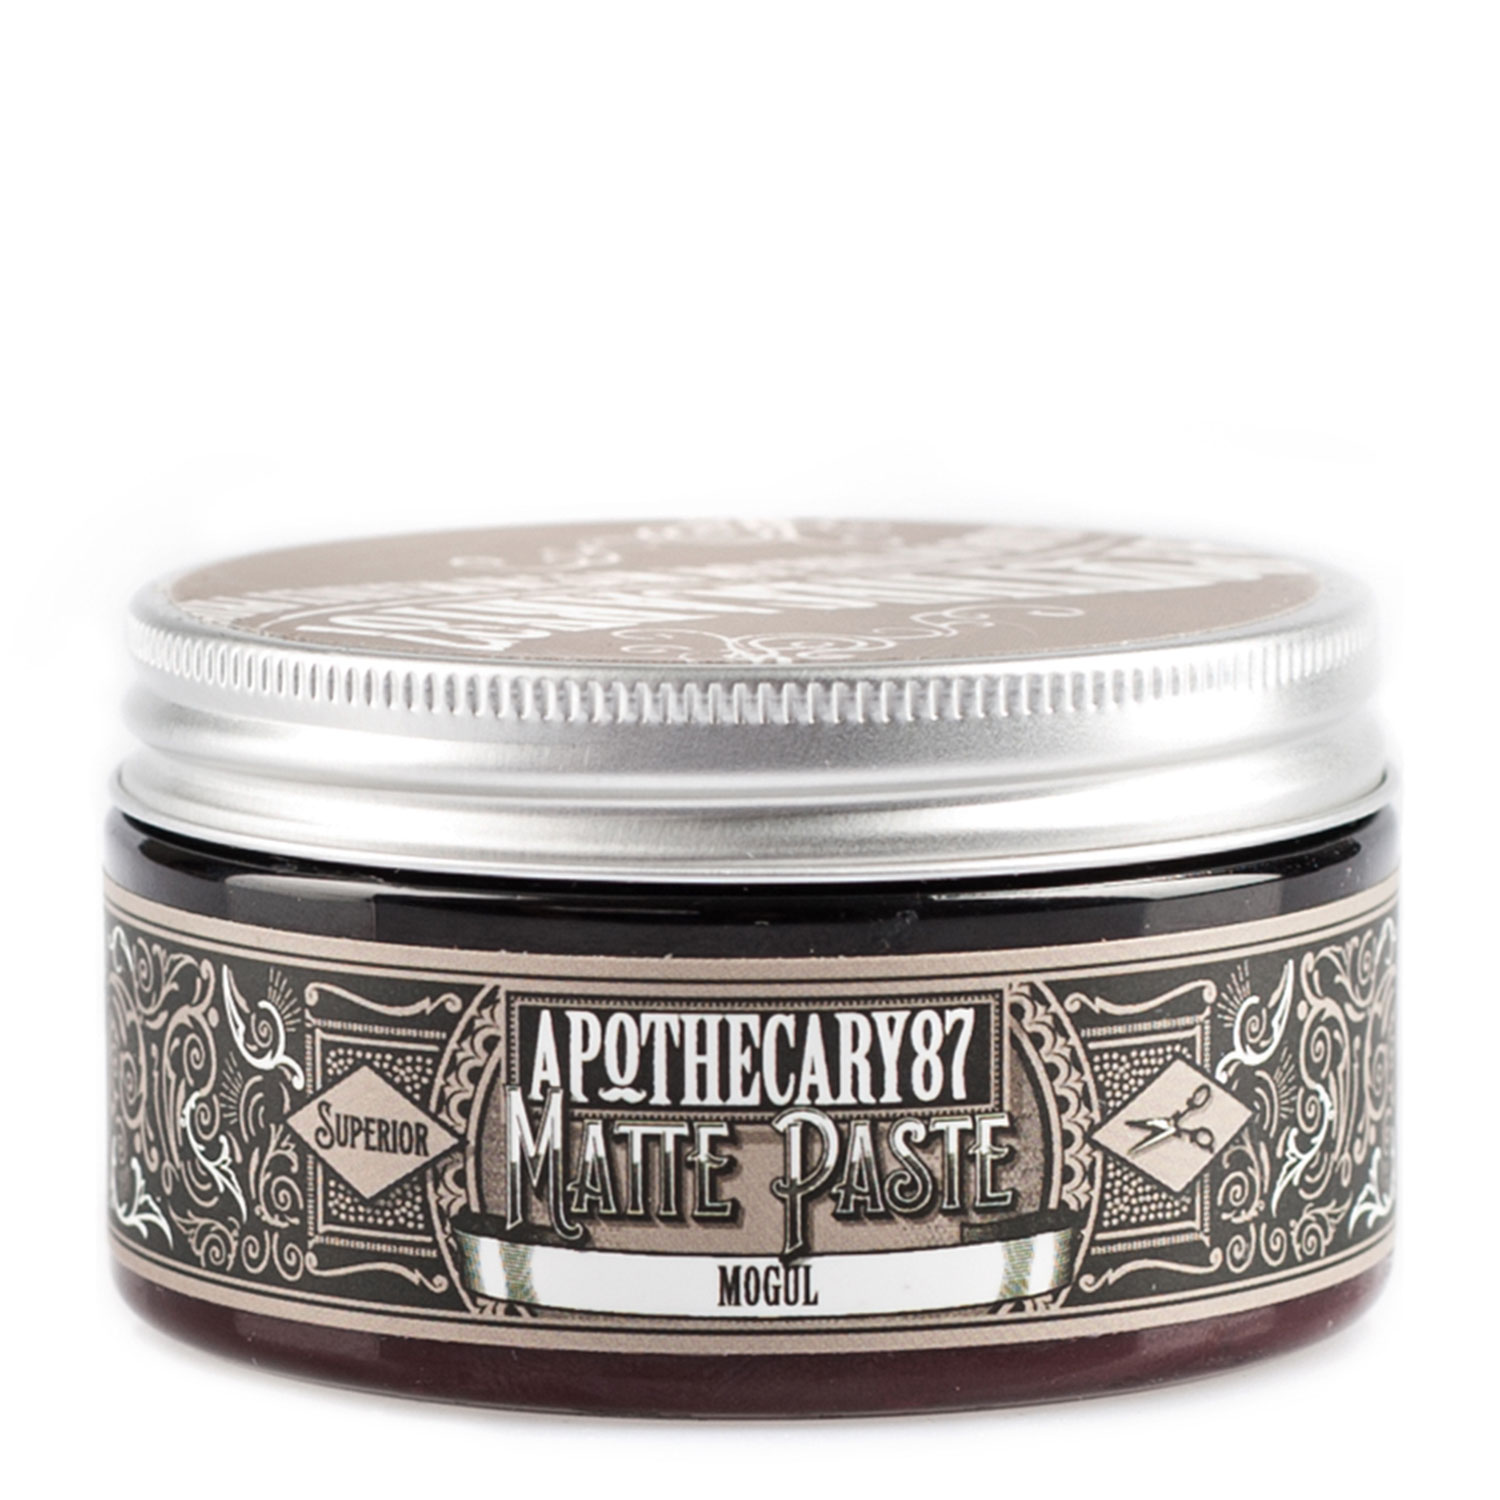 Apothecary87 Grooming - Matte Paste Mogul Fragrance